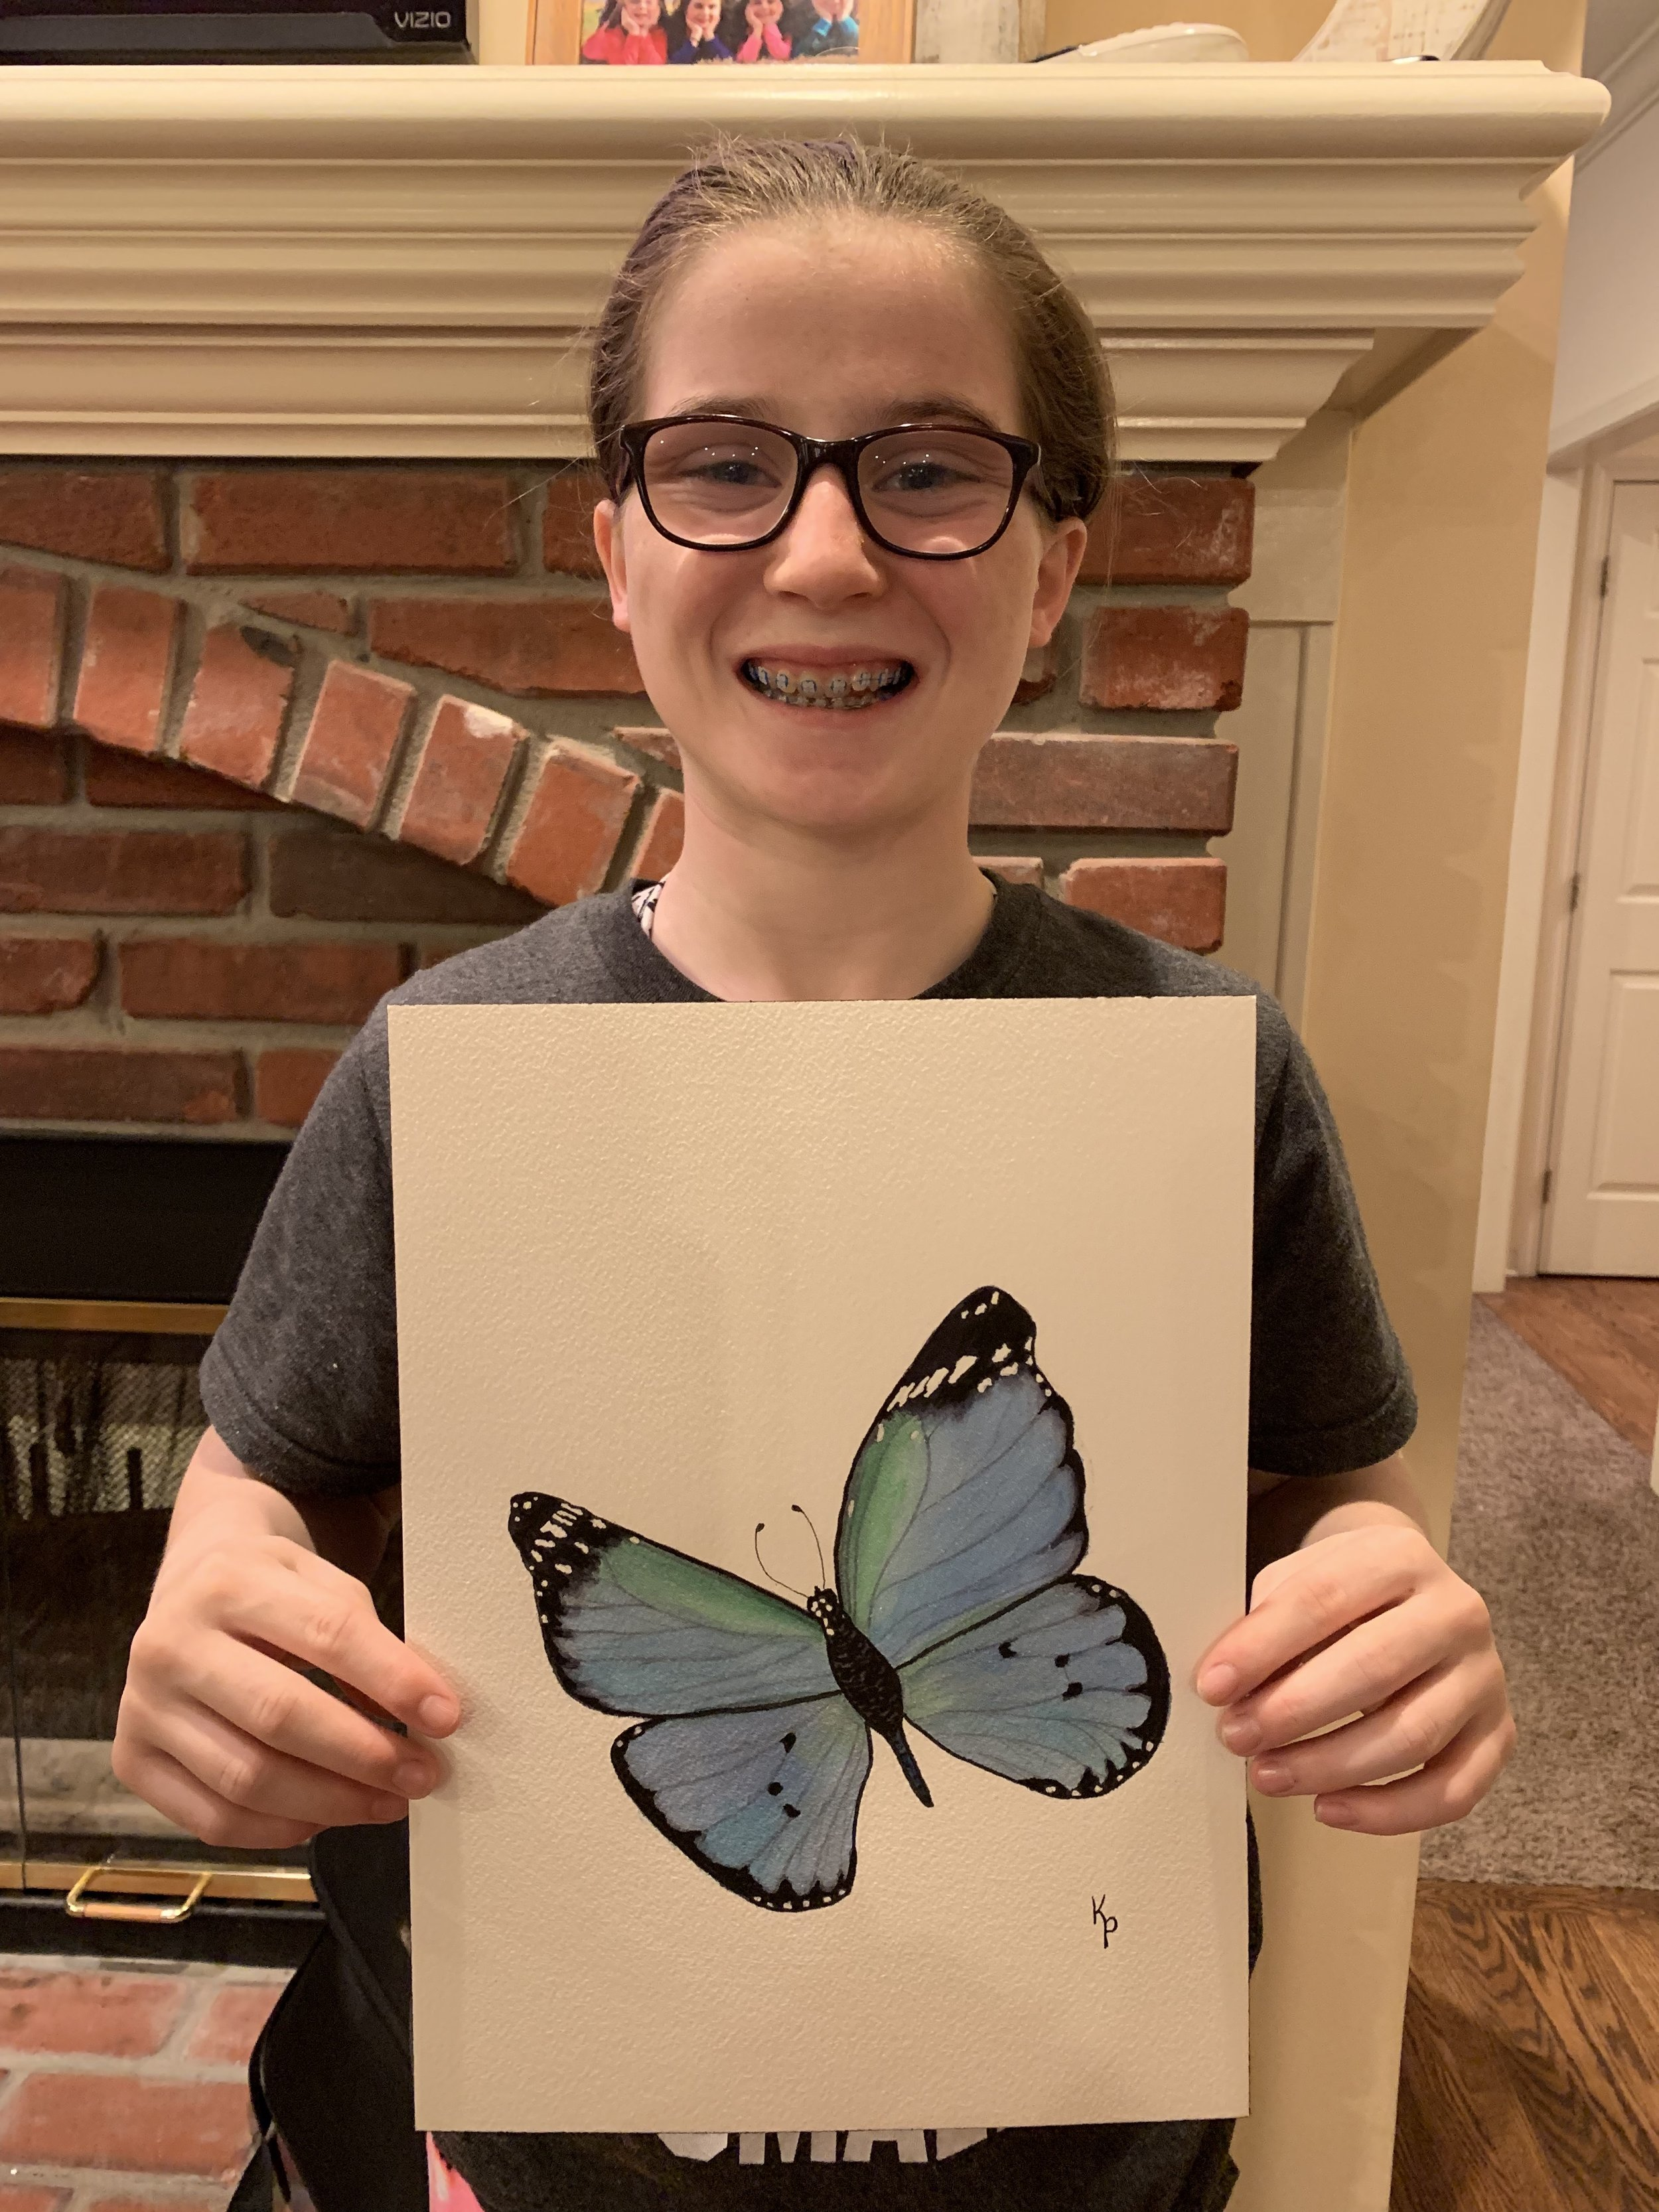 March winner,  Jaden, loves the butterfly I painted. Zoom in and you'll see the sparkles added to the wings with a watery layer of silver.   April winner:  Edith won her choice of a hardback copy of Rascal's Trip for her daughter Sabrina. Next month, she will share a photo with us.   May winner:  Another original watercolor will be the May giveaway - to be announced June 1st.